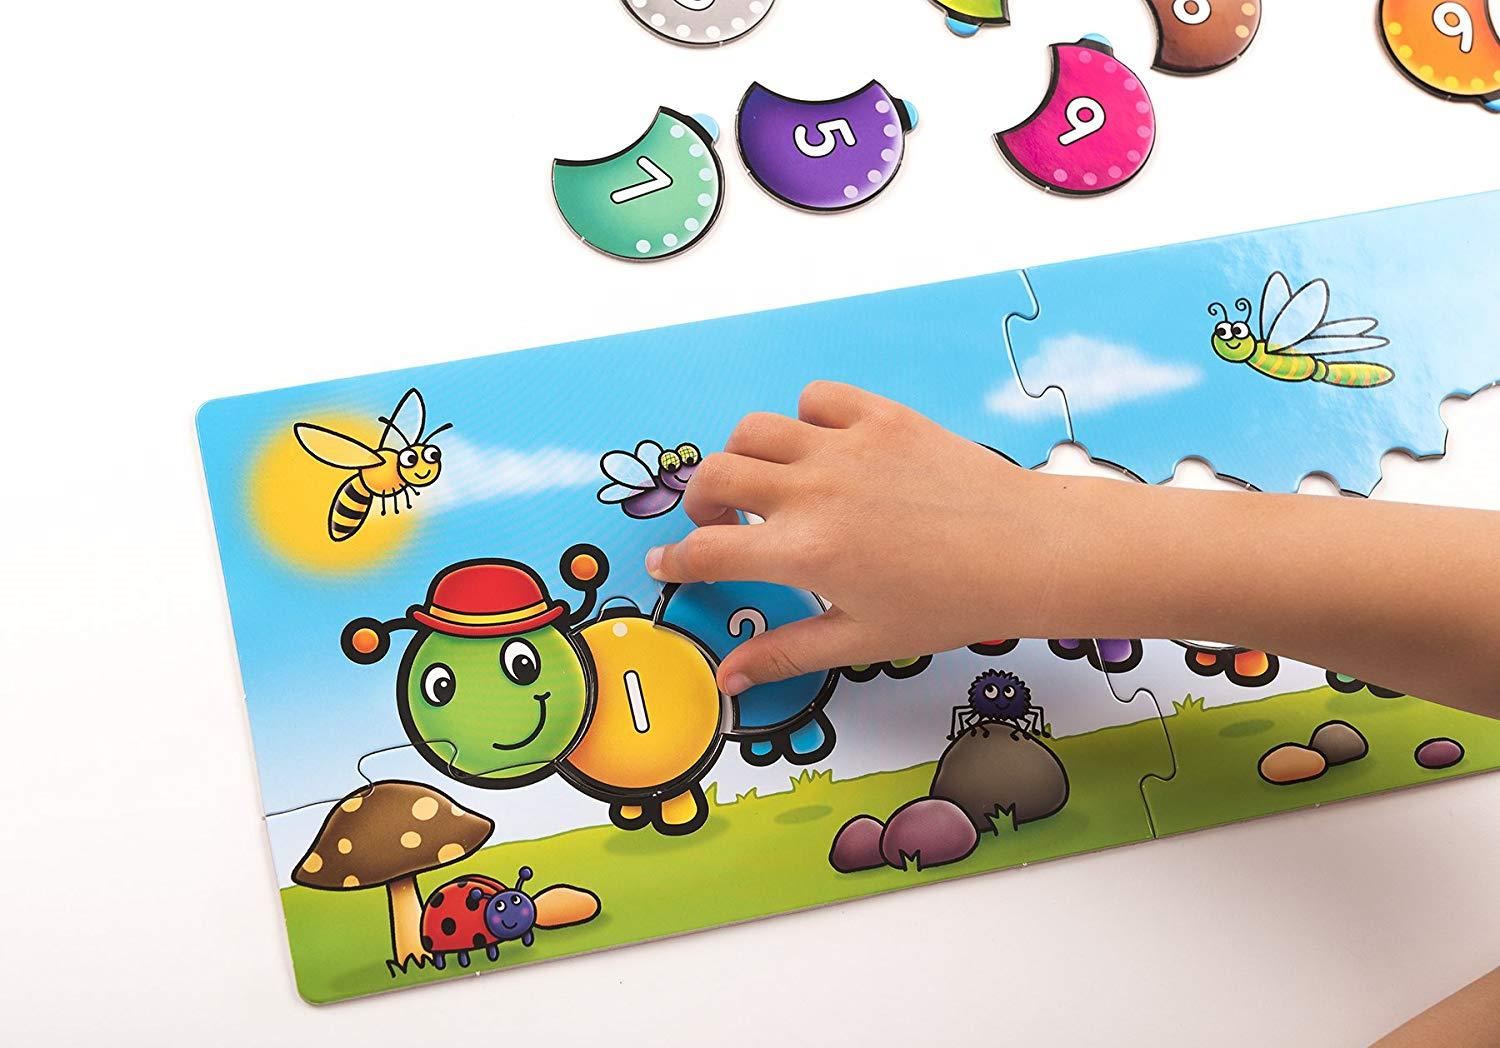 thumbnail 43 - Orchard Toys Educational Games For Kids Choose Game From Drop Down Menu